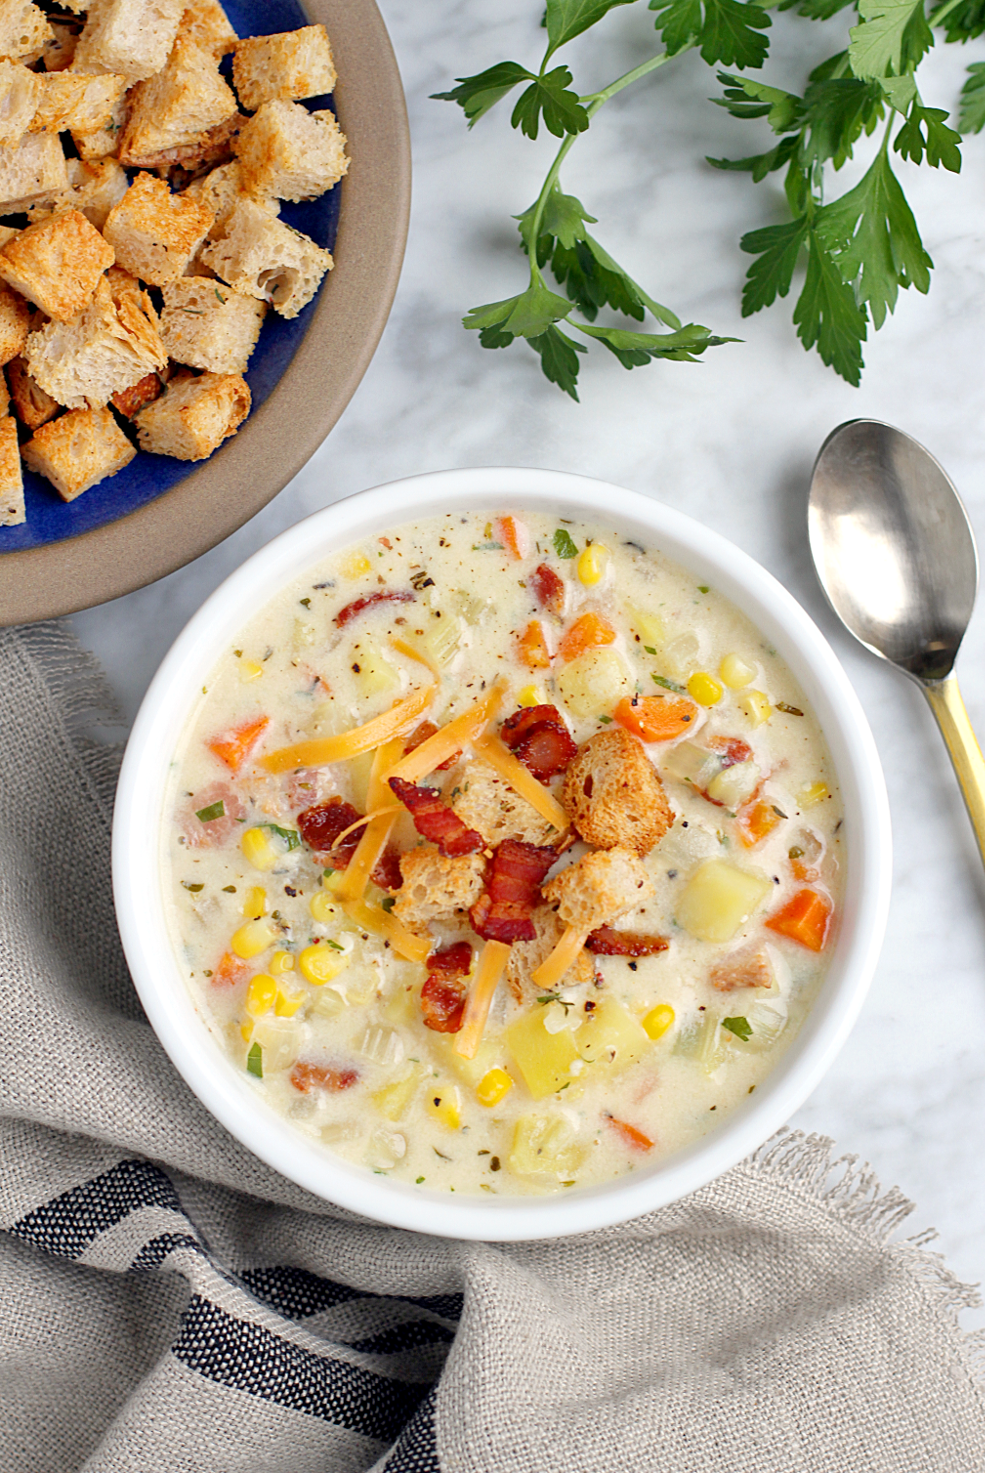 Image of bacon, cheese and corn chowder.